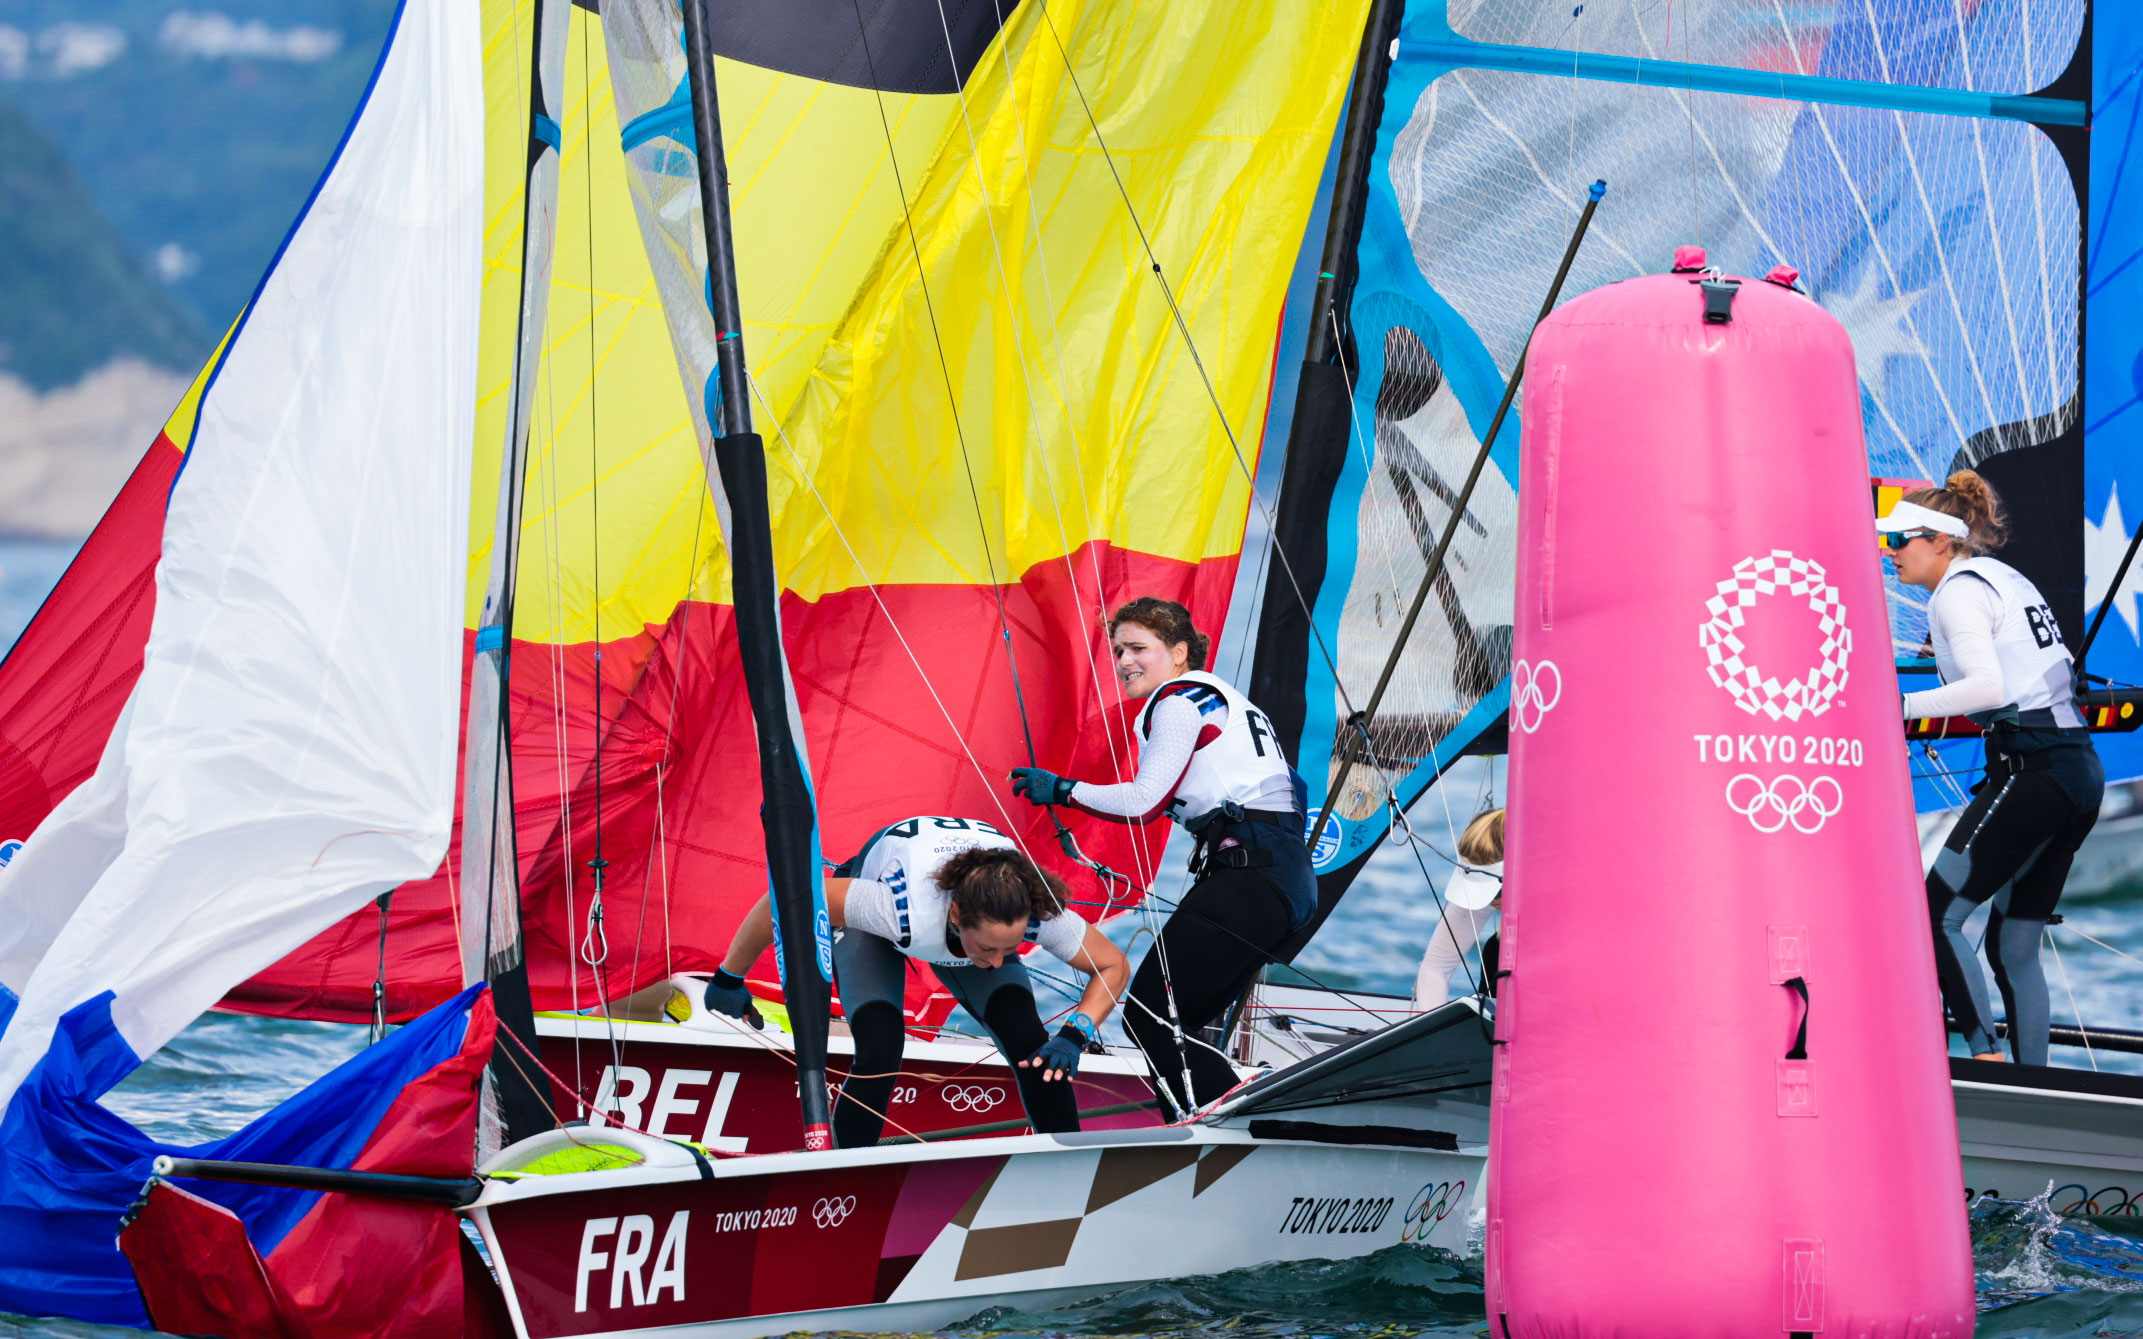 Olympic sailing: Light winds, disqualifications and more medals - Yachting World